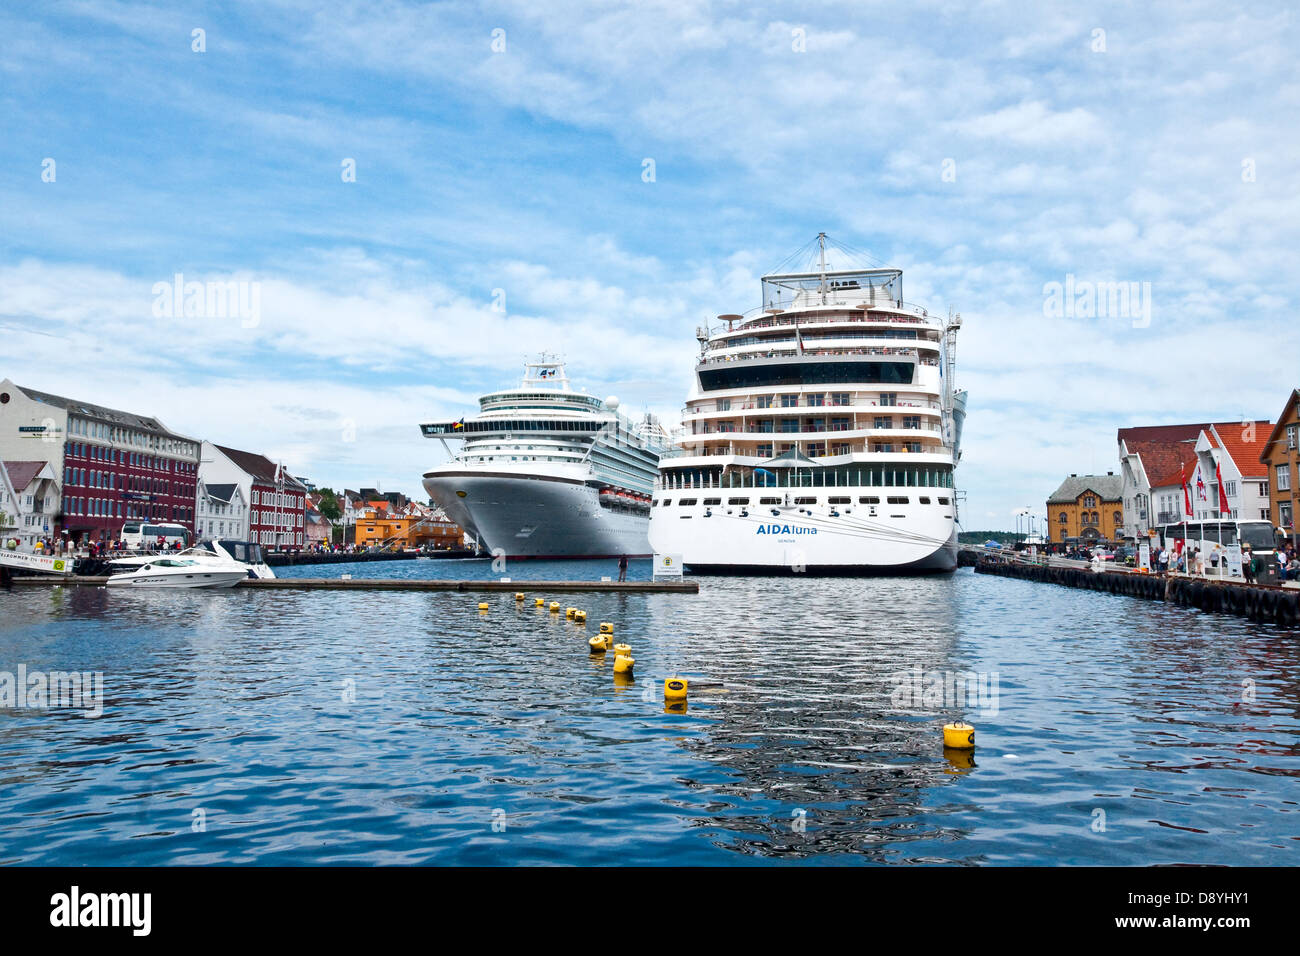 Cruise ships visiting the Norwegian city of Stavanger are able to moor right in the middle of the old town - Stock Image